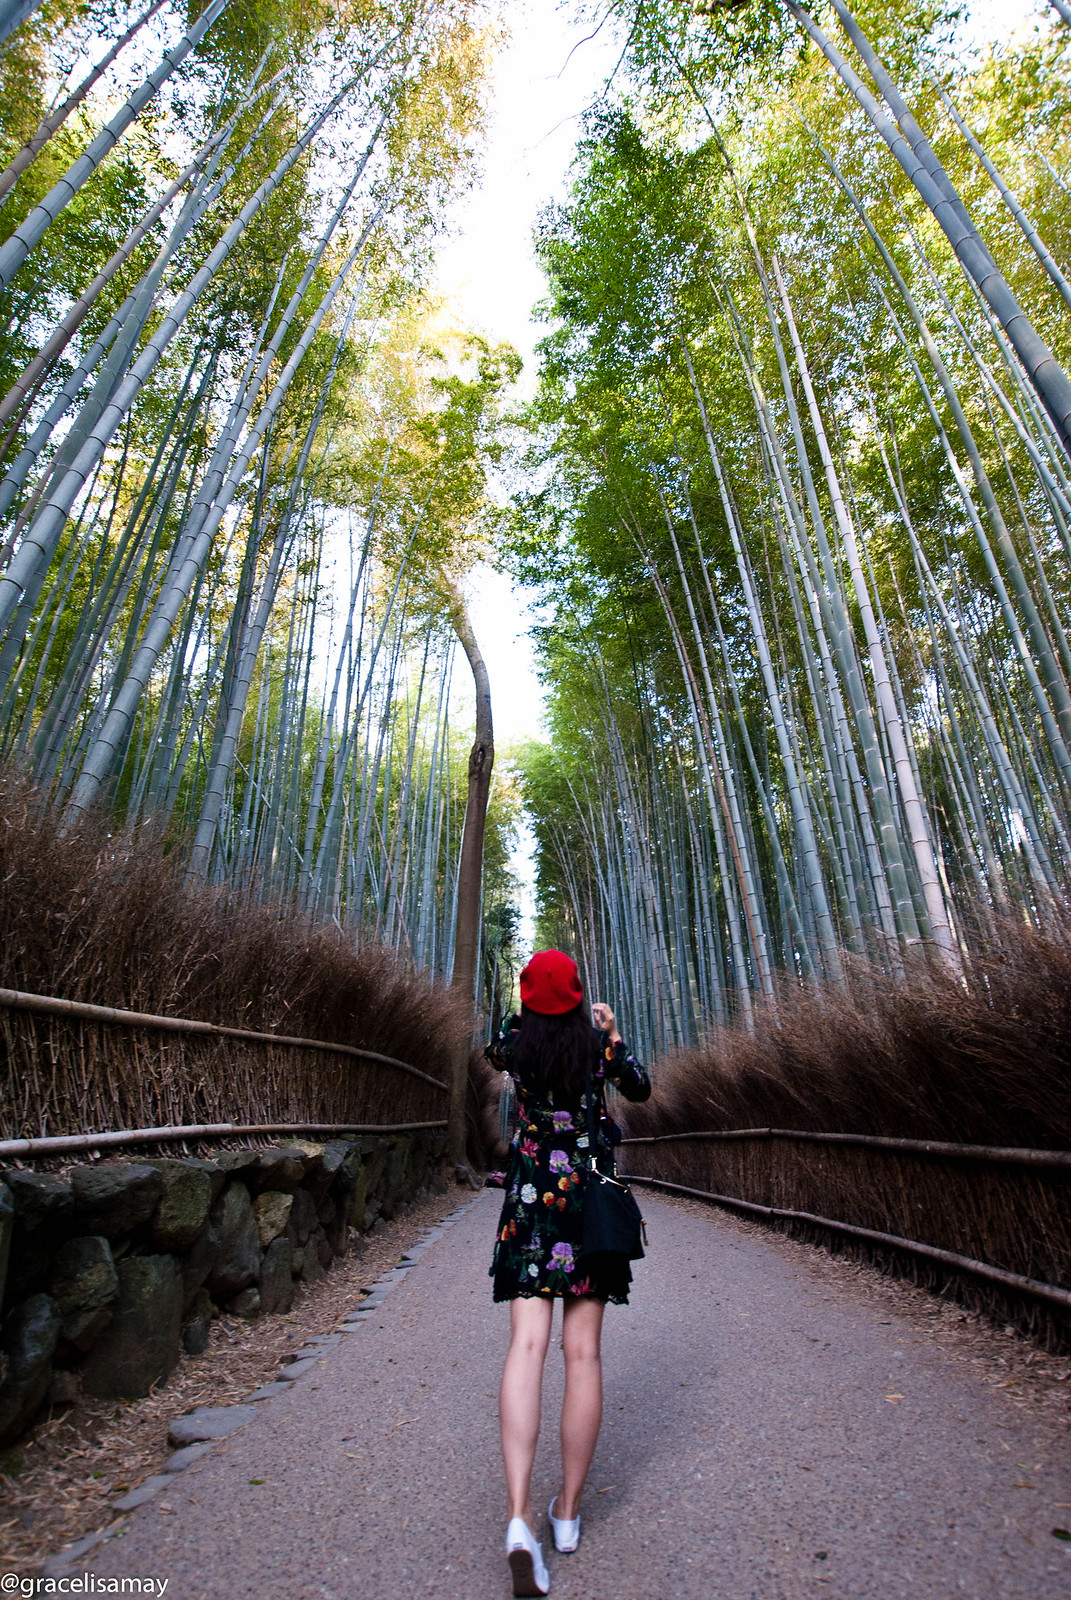 Japan: Bamboo Forest in Kyoto